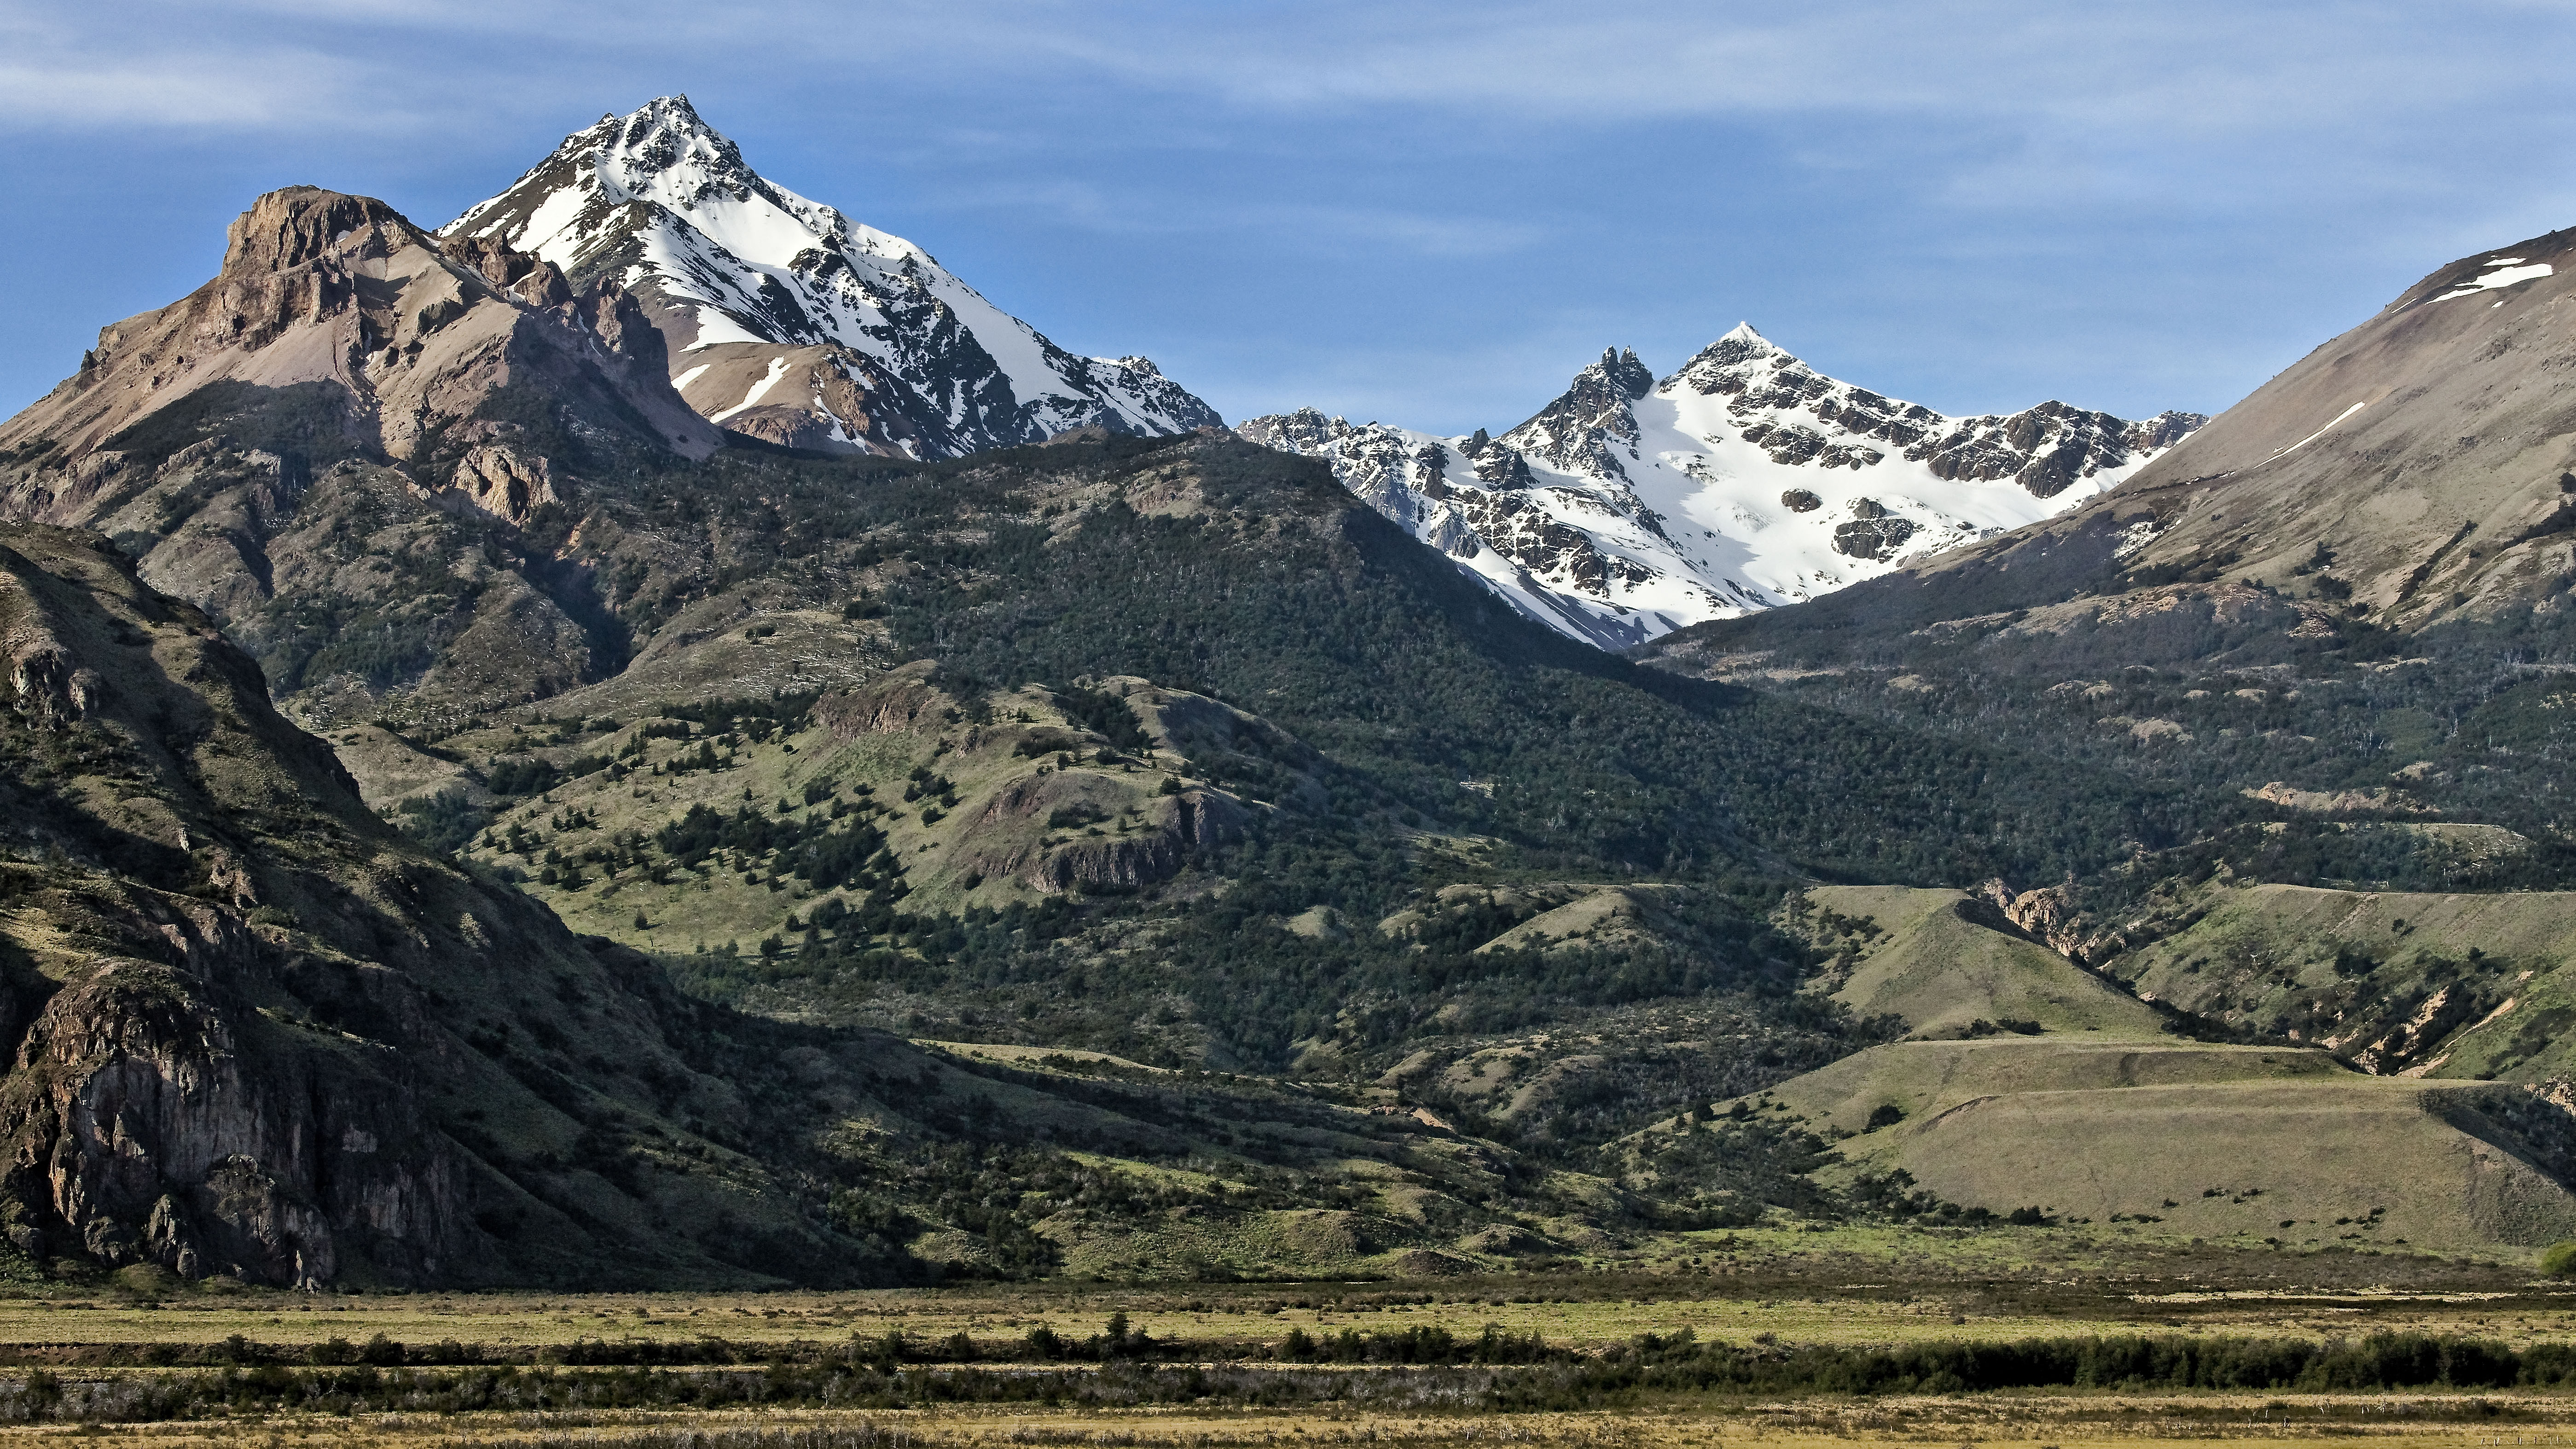 Chile creates nationwide parks from donated land